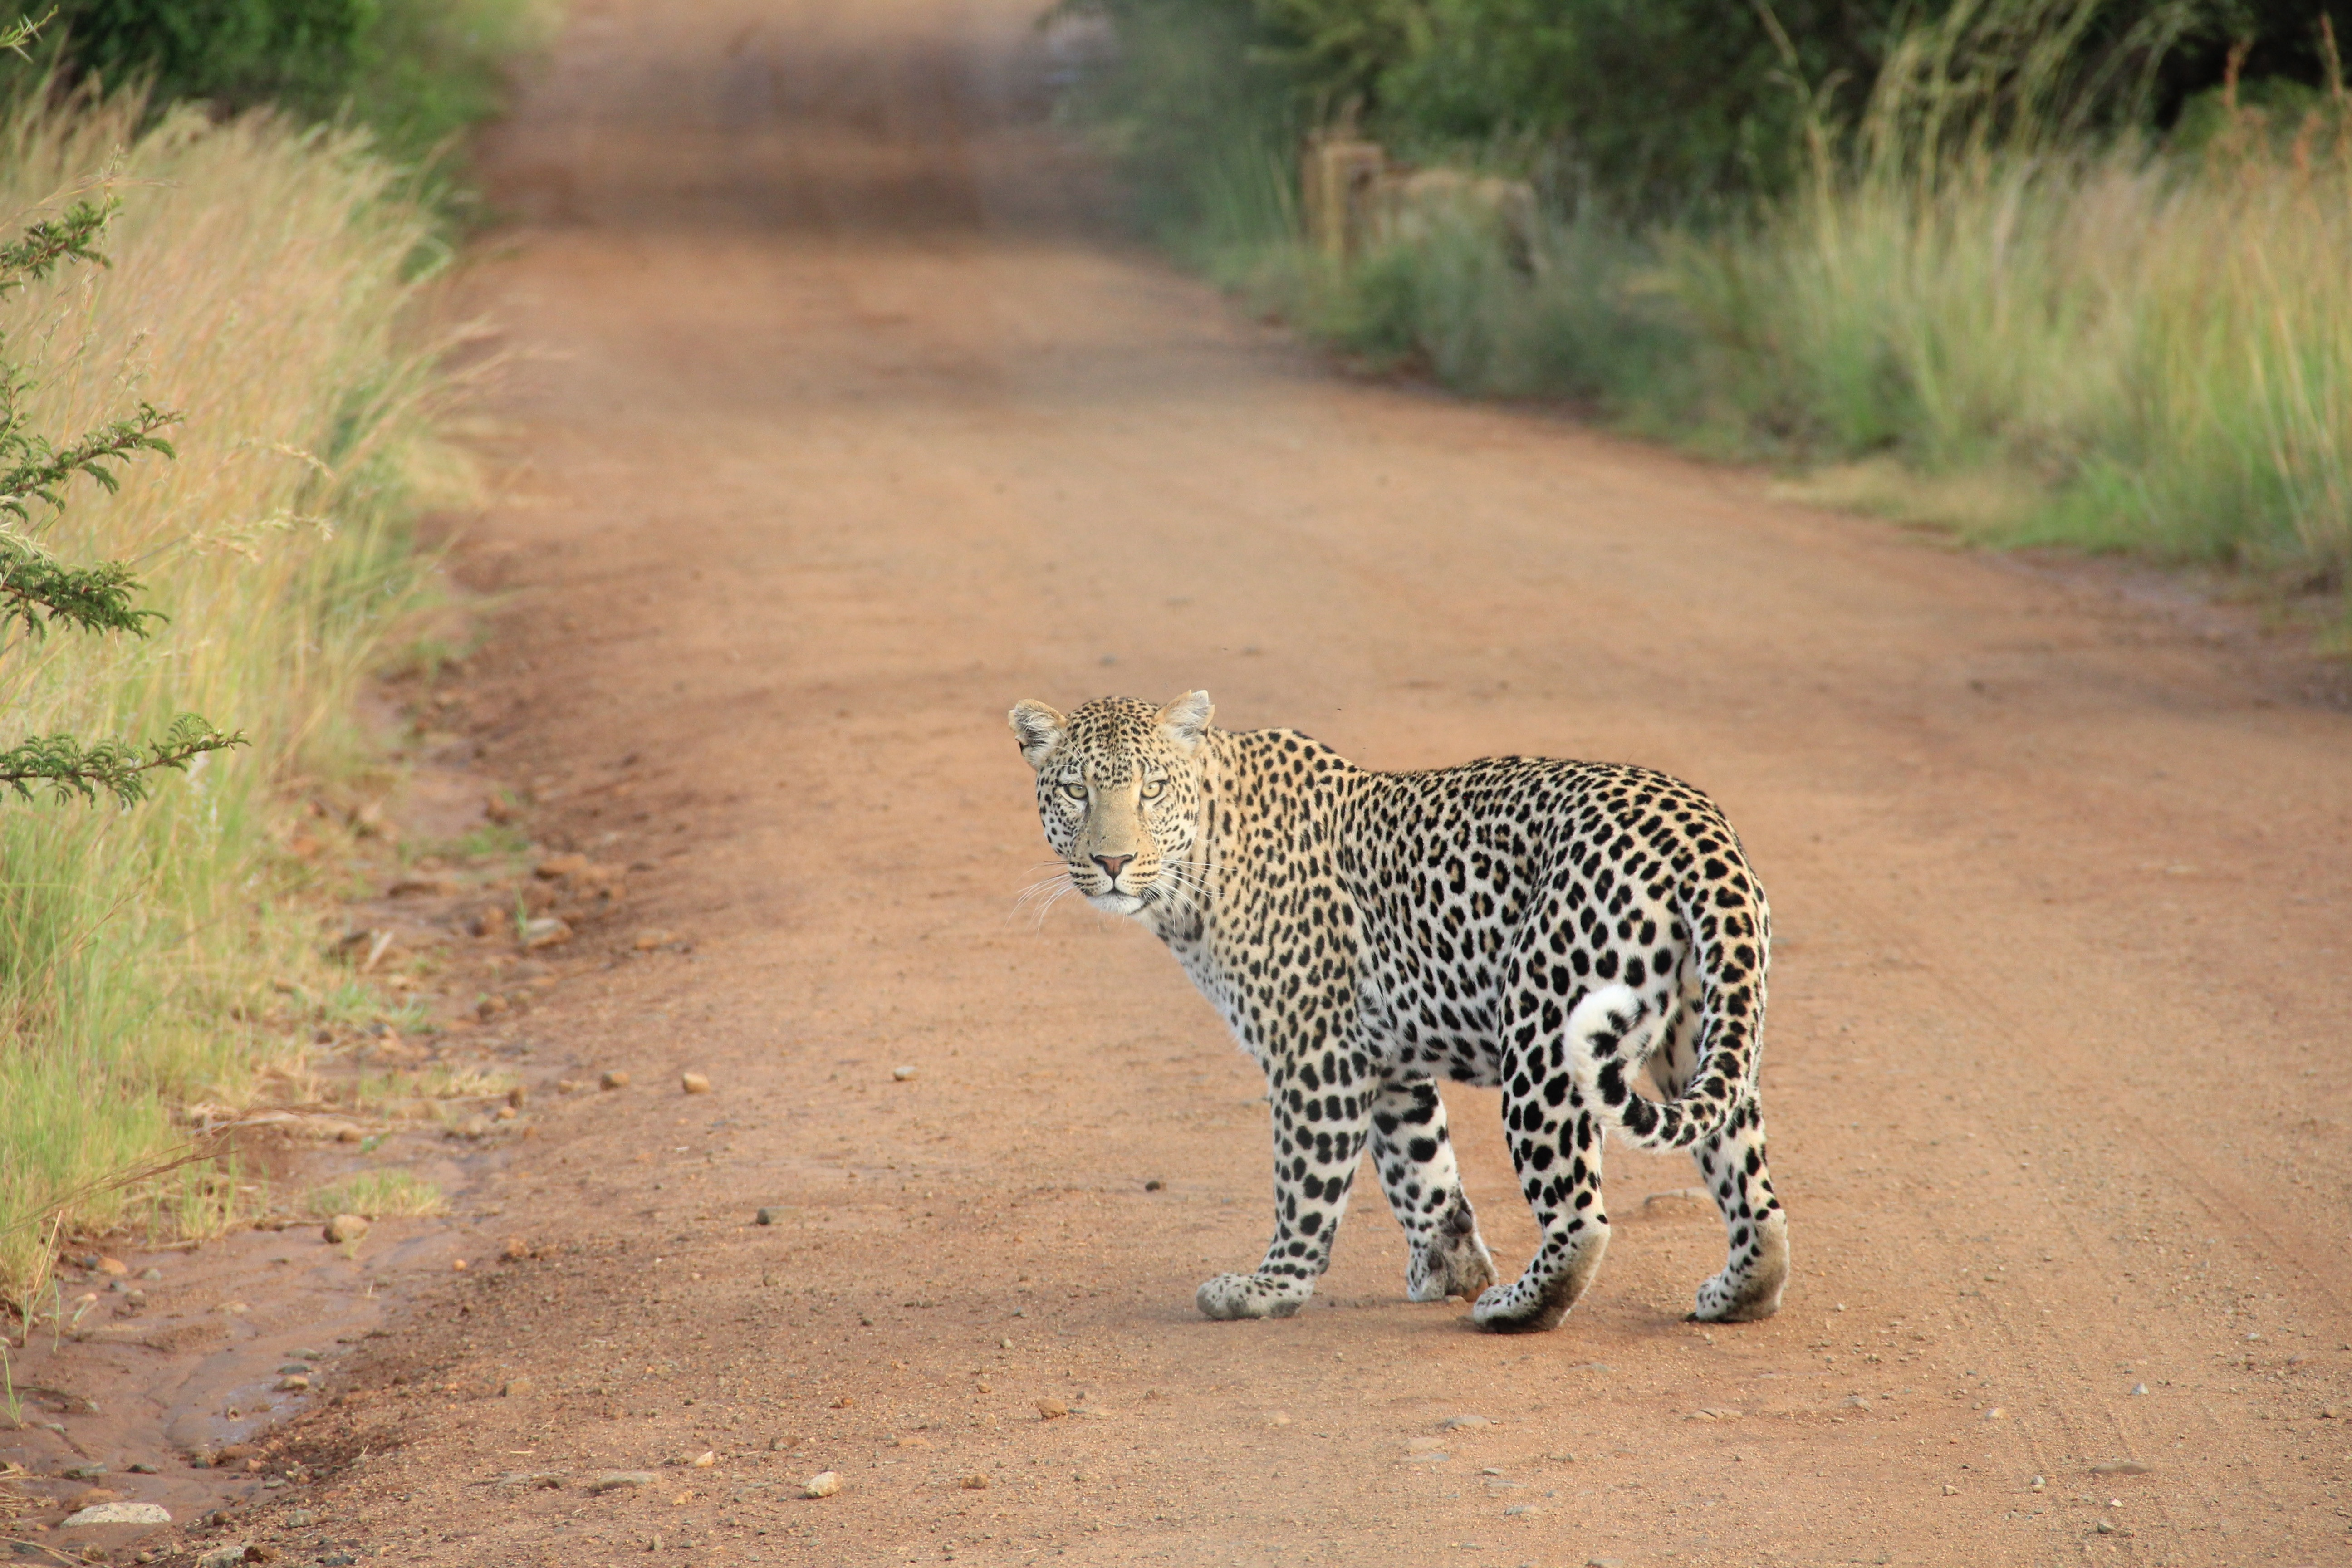 Leopard, Pathway, Quick, Route, Path, HQ Photo